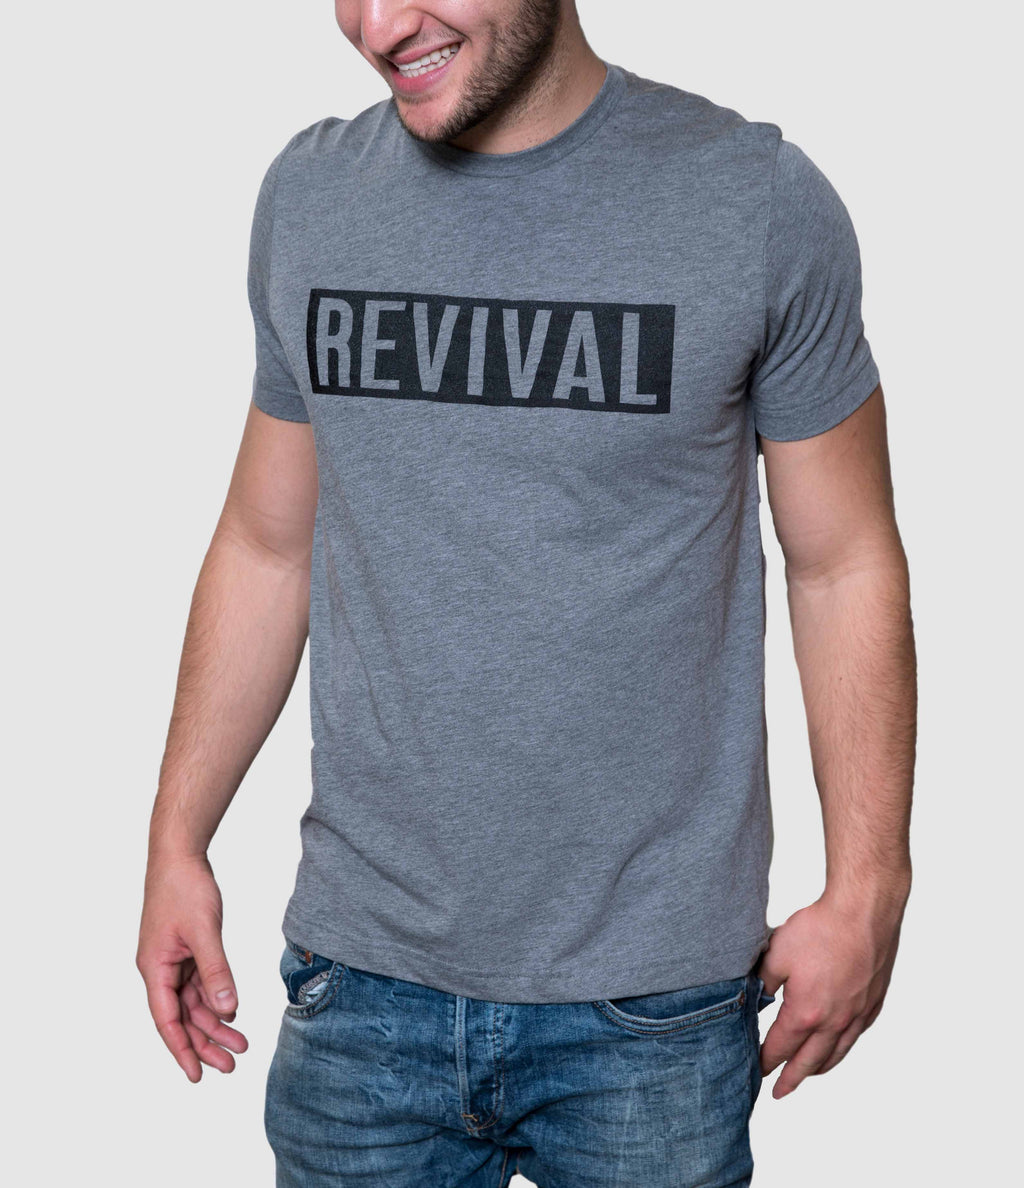 Revival T-Shirt